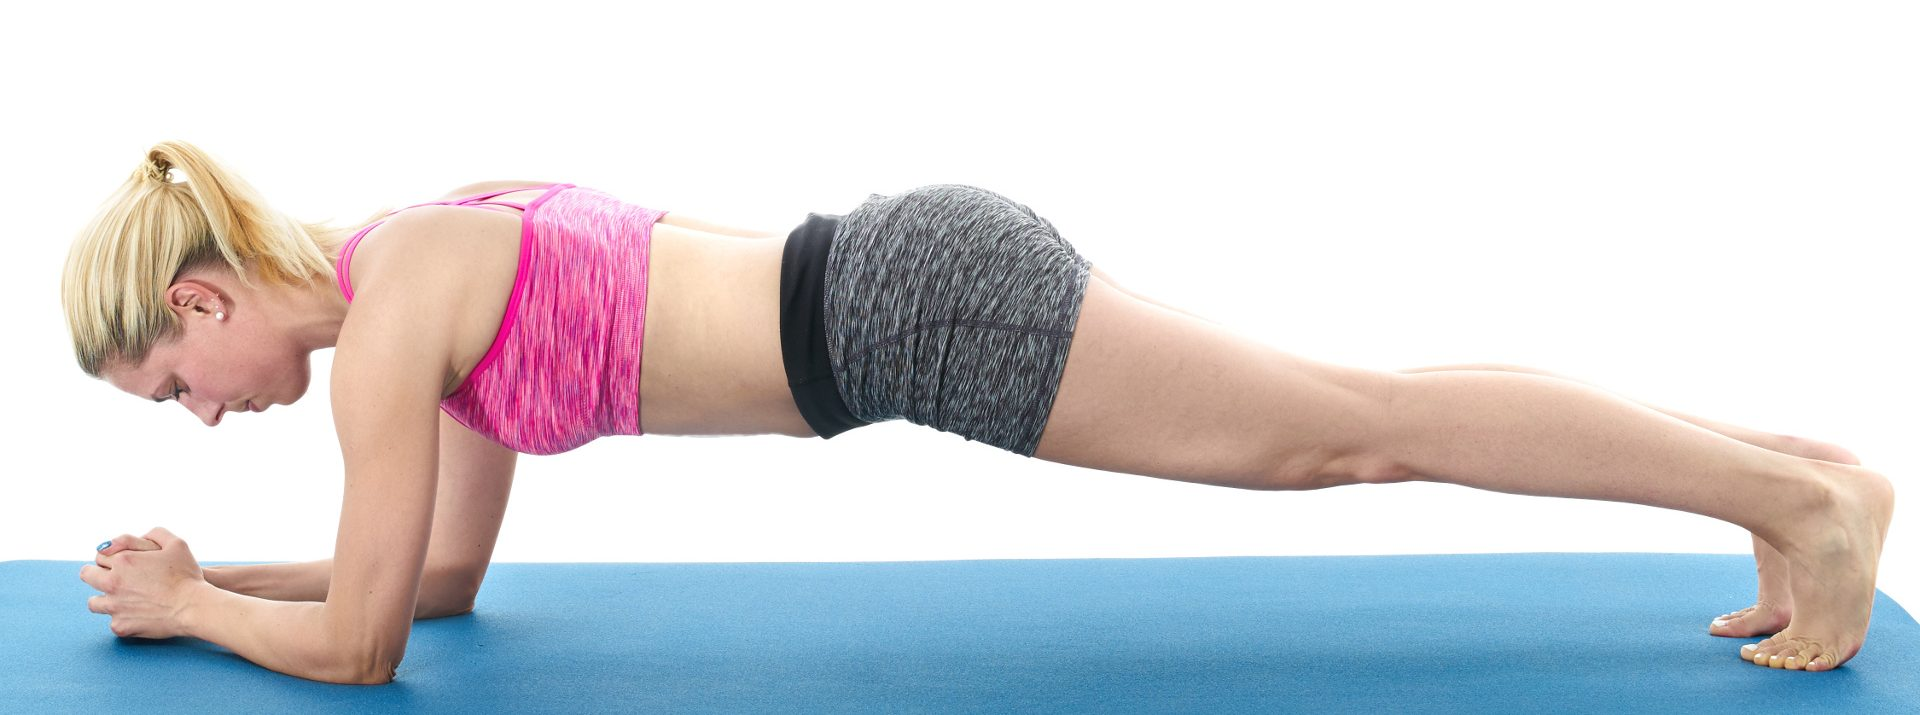 Hammersmith Physiotherapy Young woman doing full body yoga exercise on blue mat